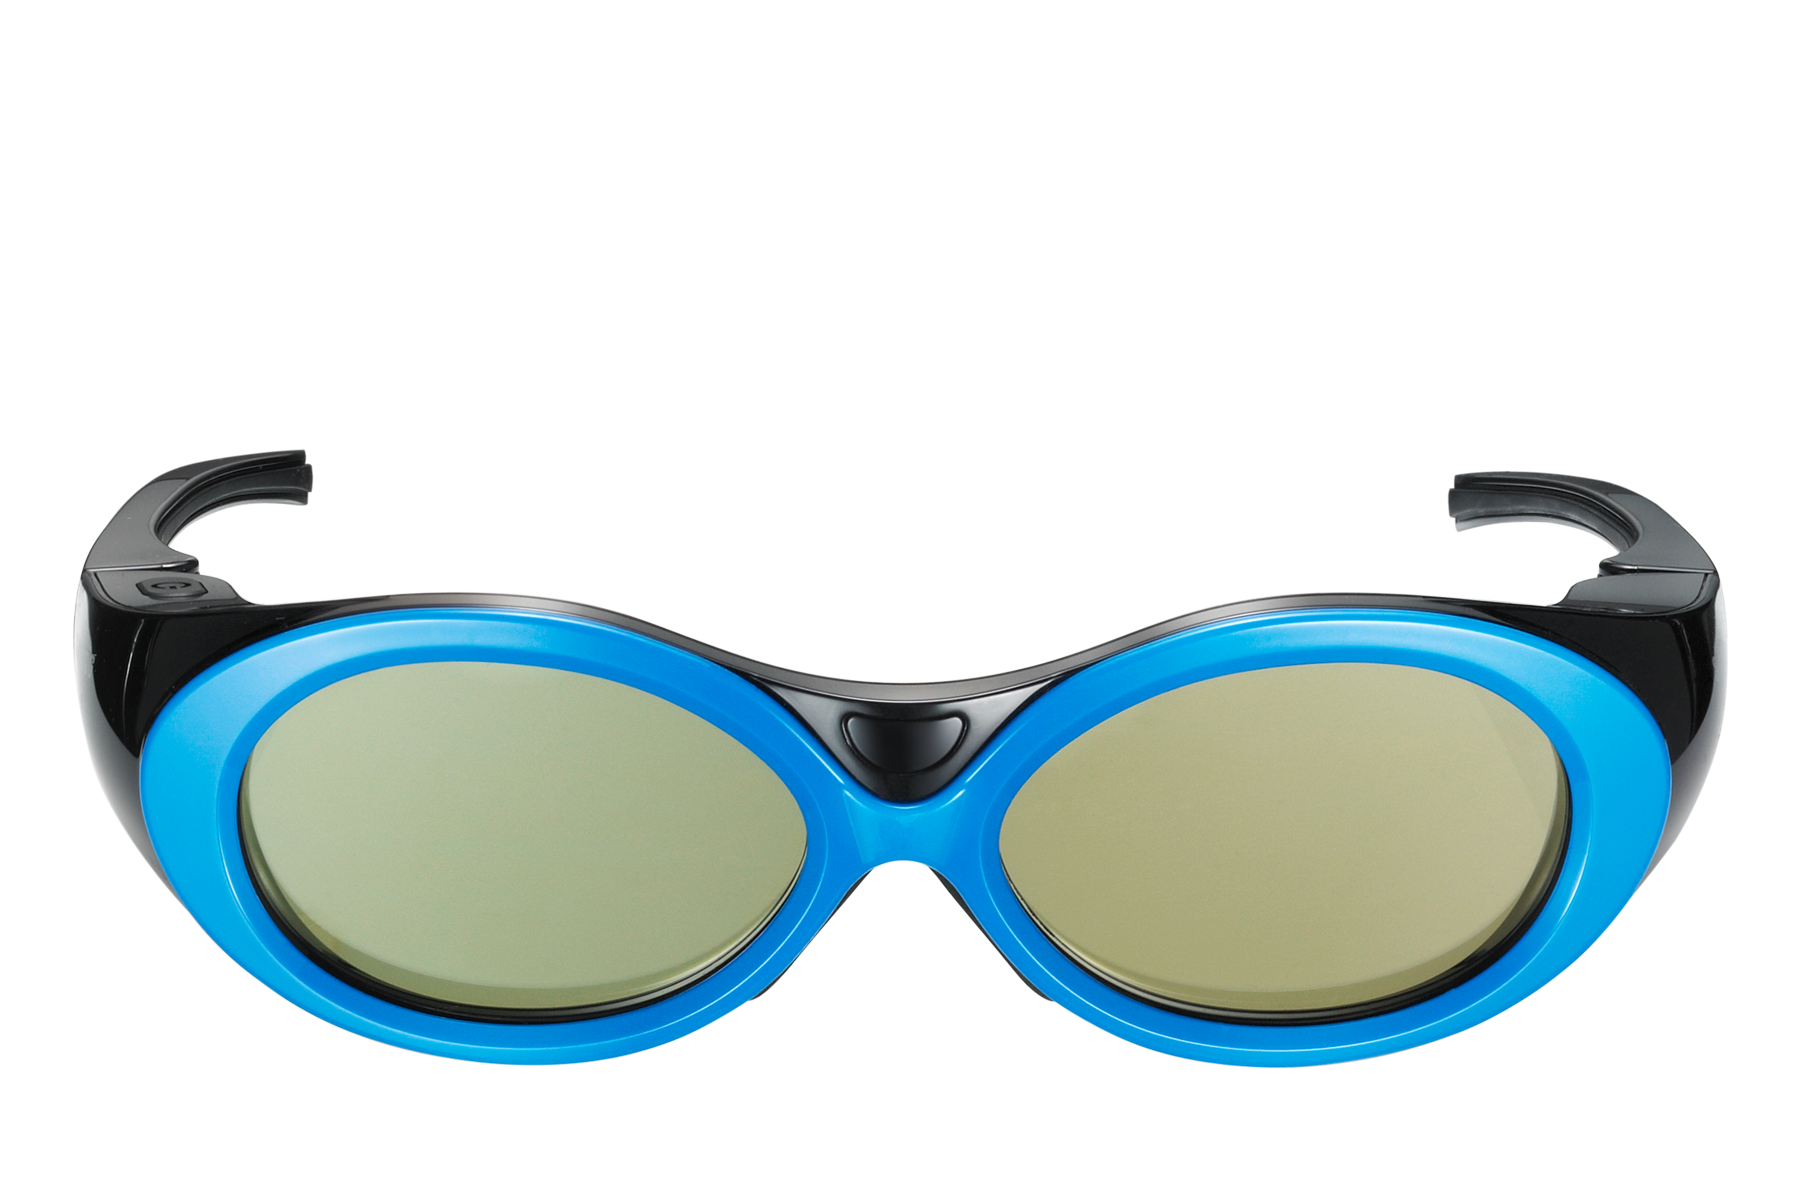 SSG-2200KR 3D Glasses